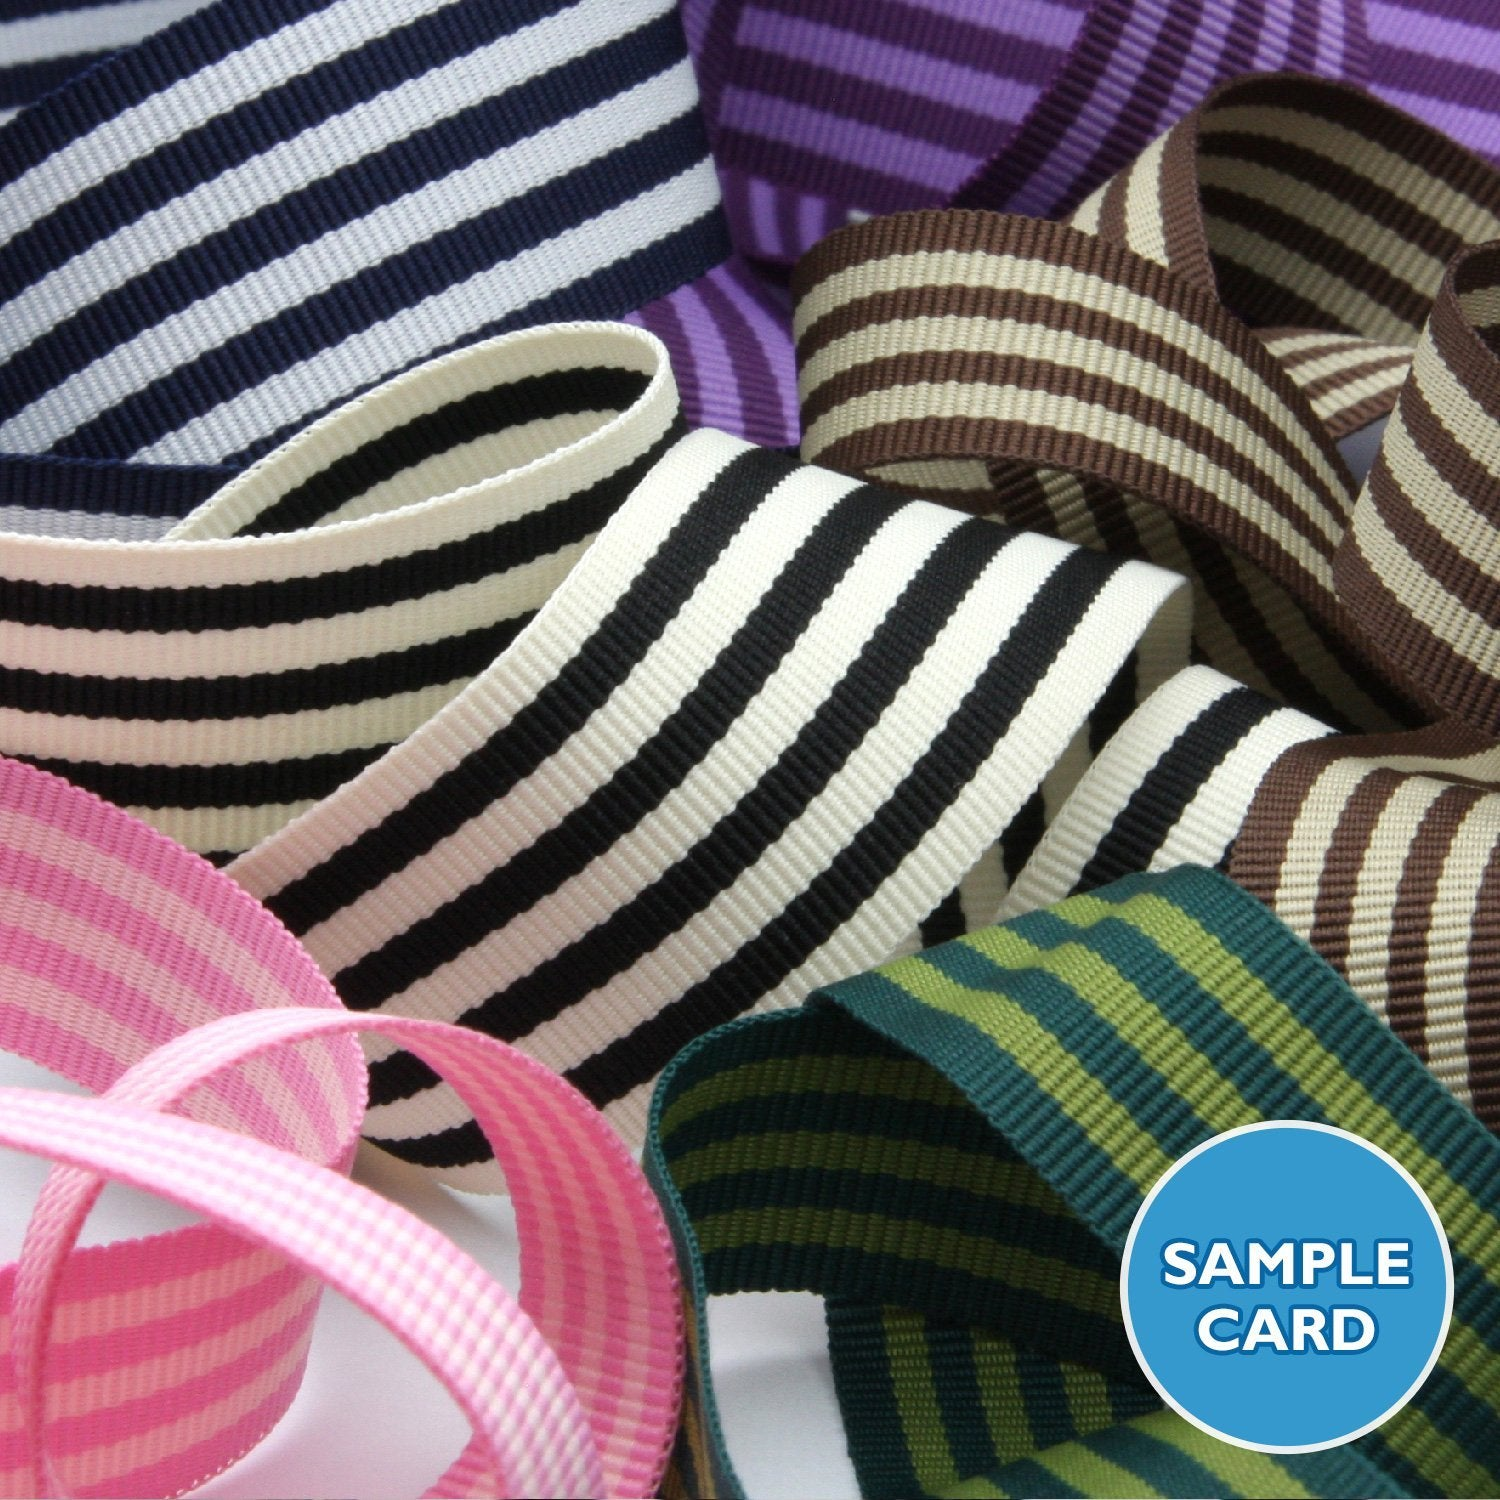 FUJIYAMA RIBBON Sample Card Stripe Grosgrain Ribbon (FY-2242 2244)